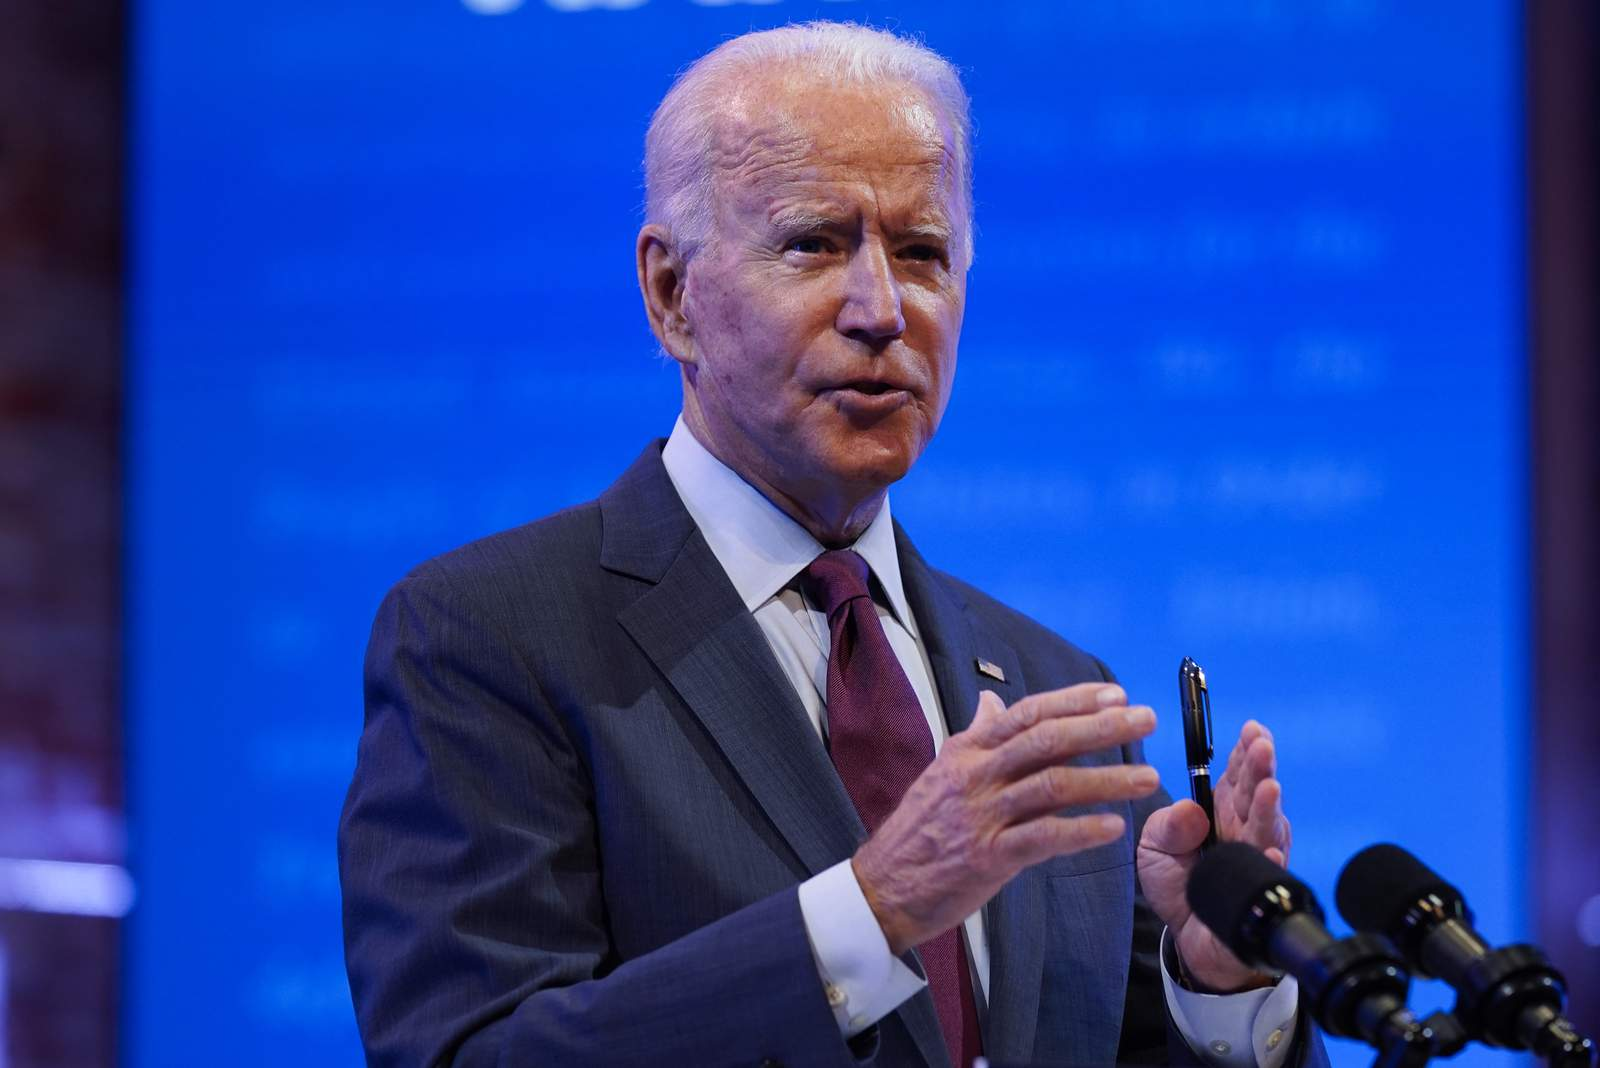 Biden to Dems: Focus on health care, not court expansion